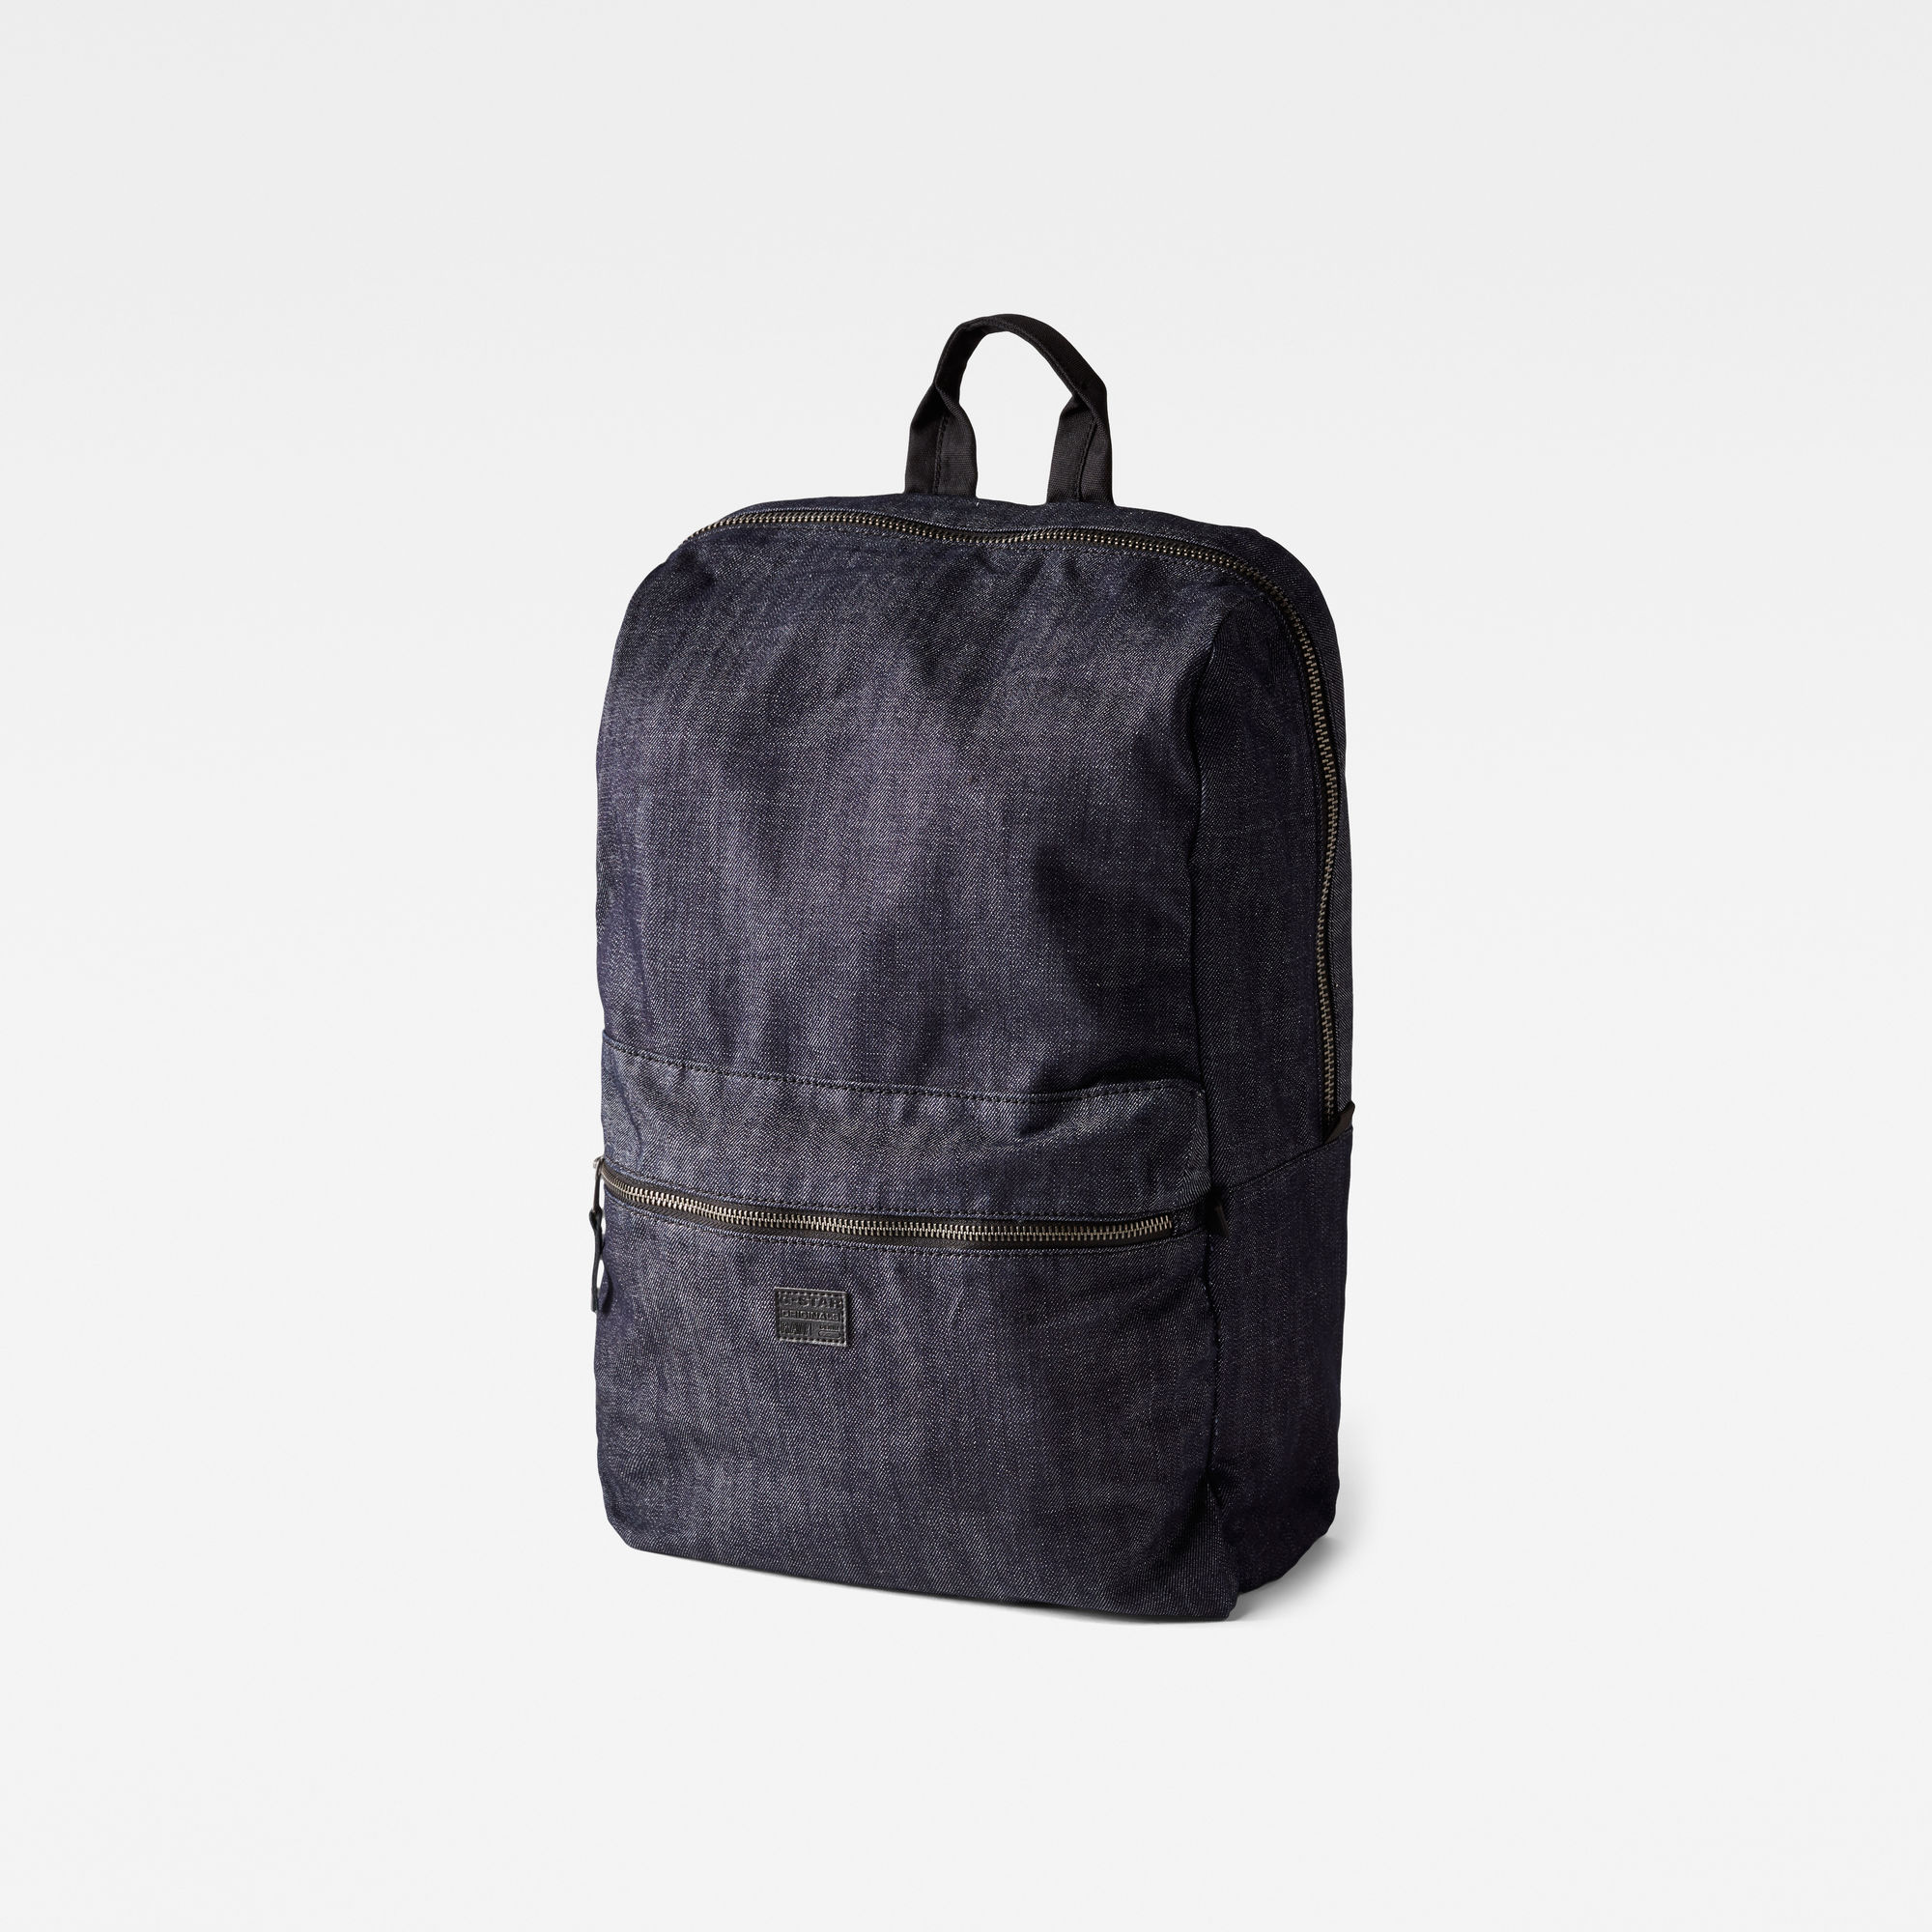 Image of G Star Raw Estan Backpack Denim